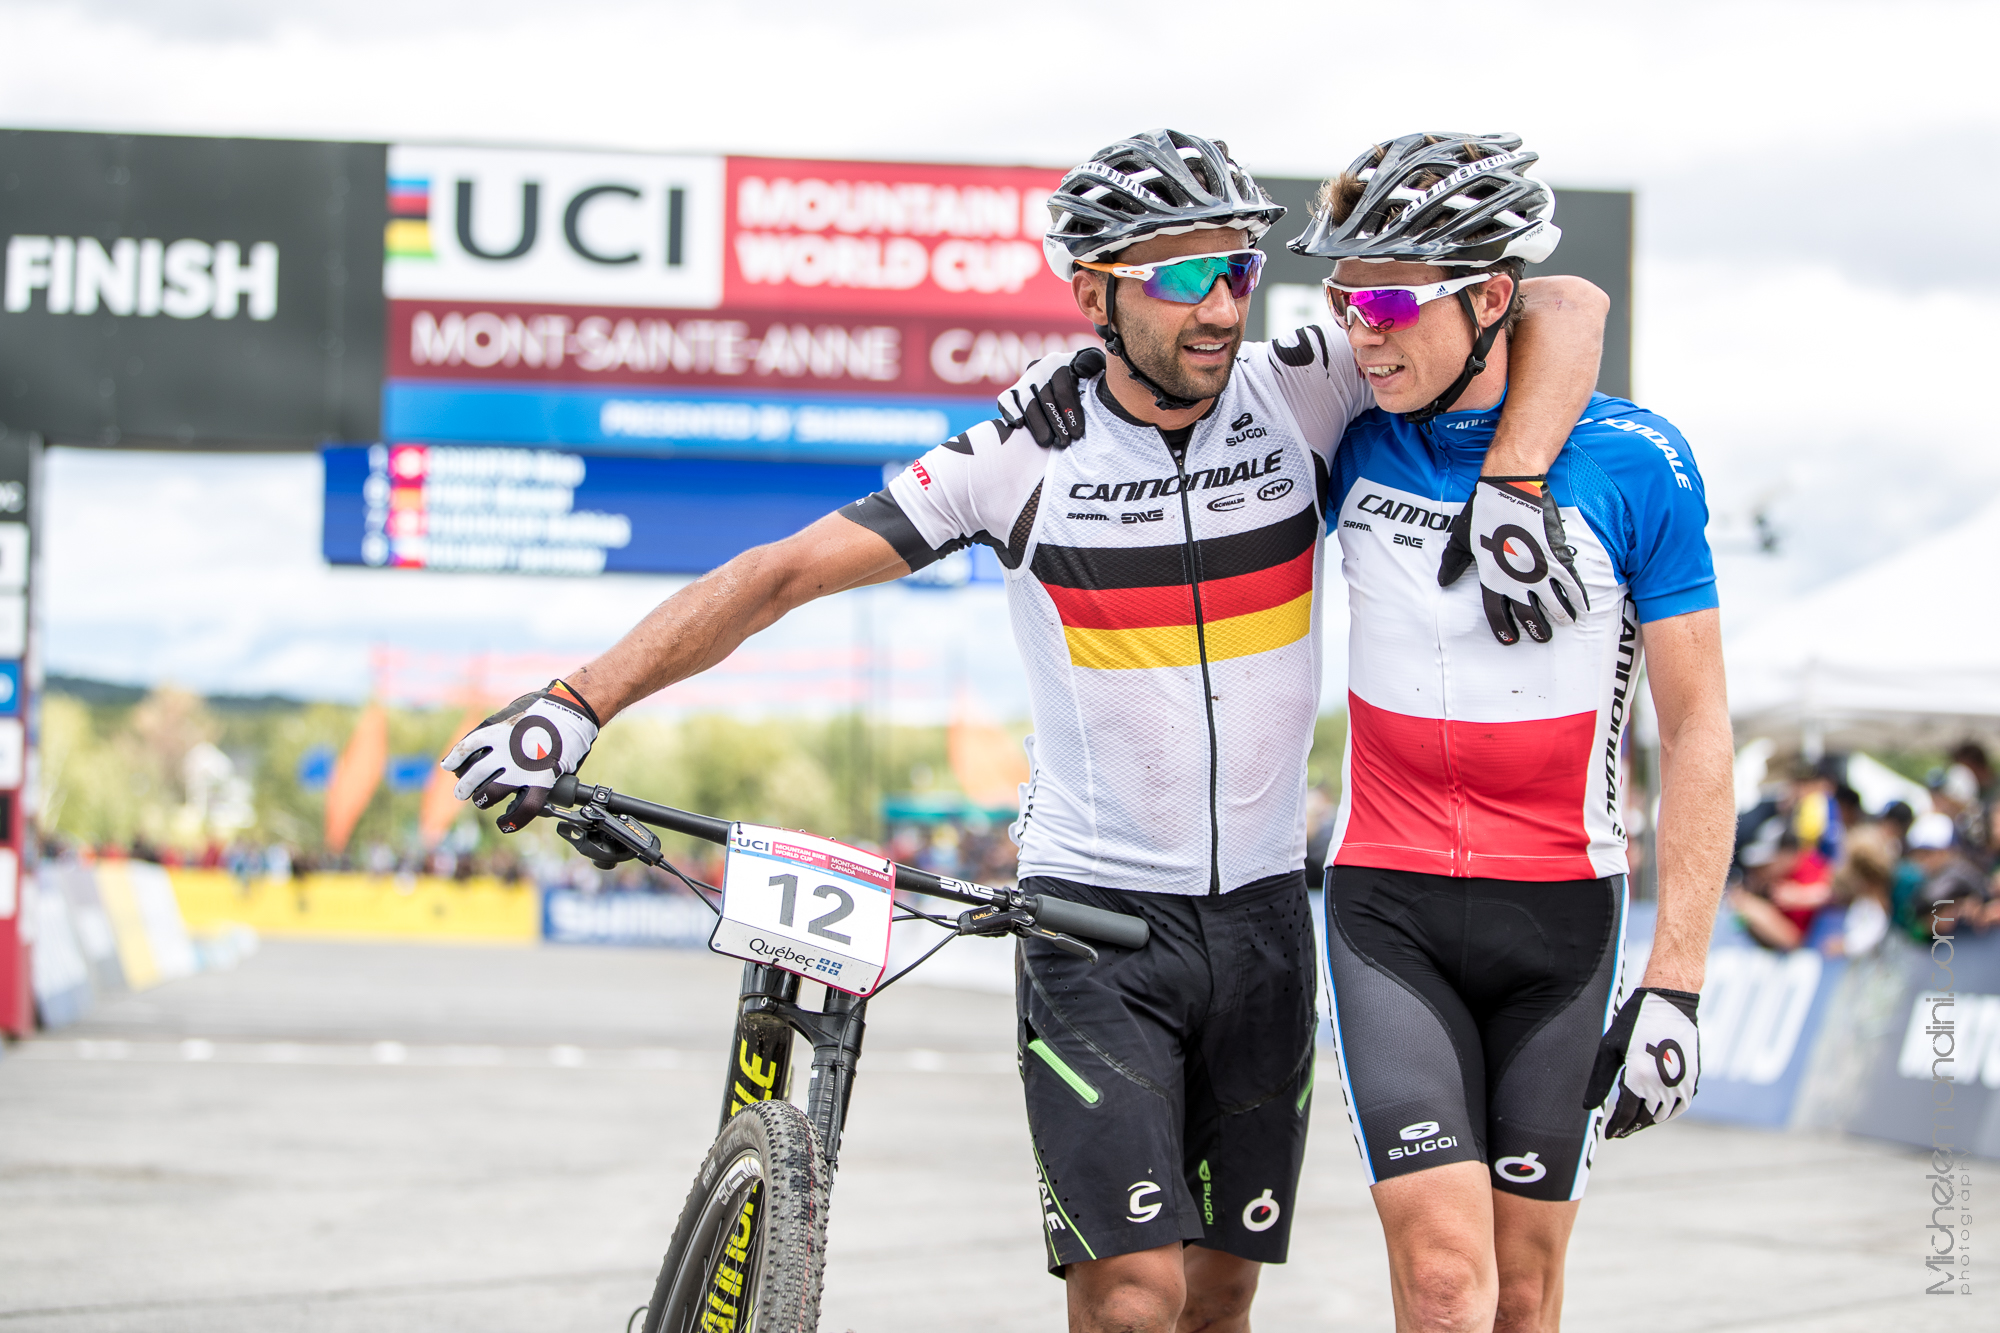 Manuel Fumic and Maxime Marotte celebrate in Mont Sainte Anne World Cup - ph: Michele Mondini